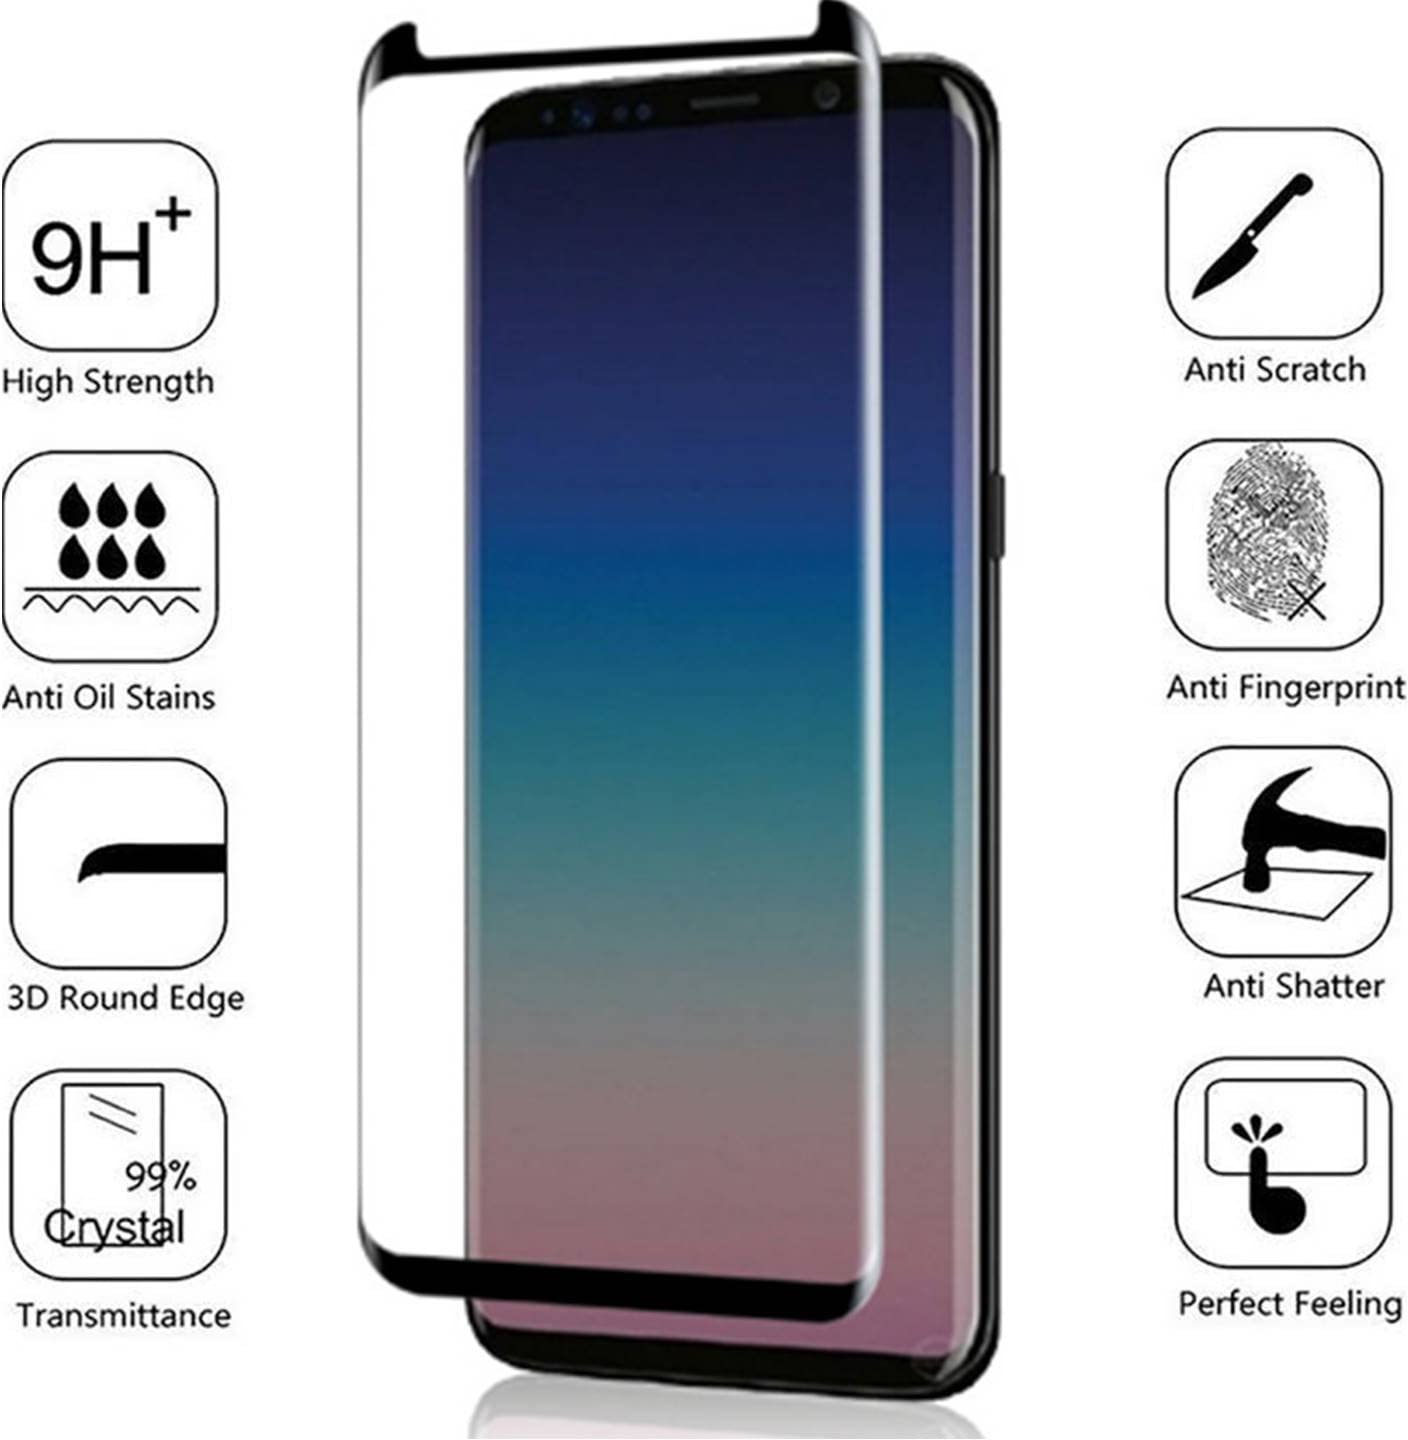 Anti-Scratch Lifetime Protection /& Replacement 3D Curved Full Coverage Samsung Galaxy S9 Plus Screen Protector Tempered Glass BISEN Anti-Shock Edge-to-Edge Full Screen Cover